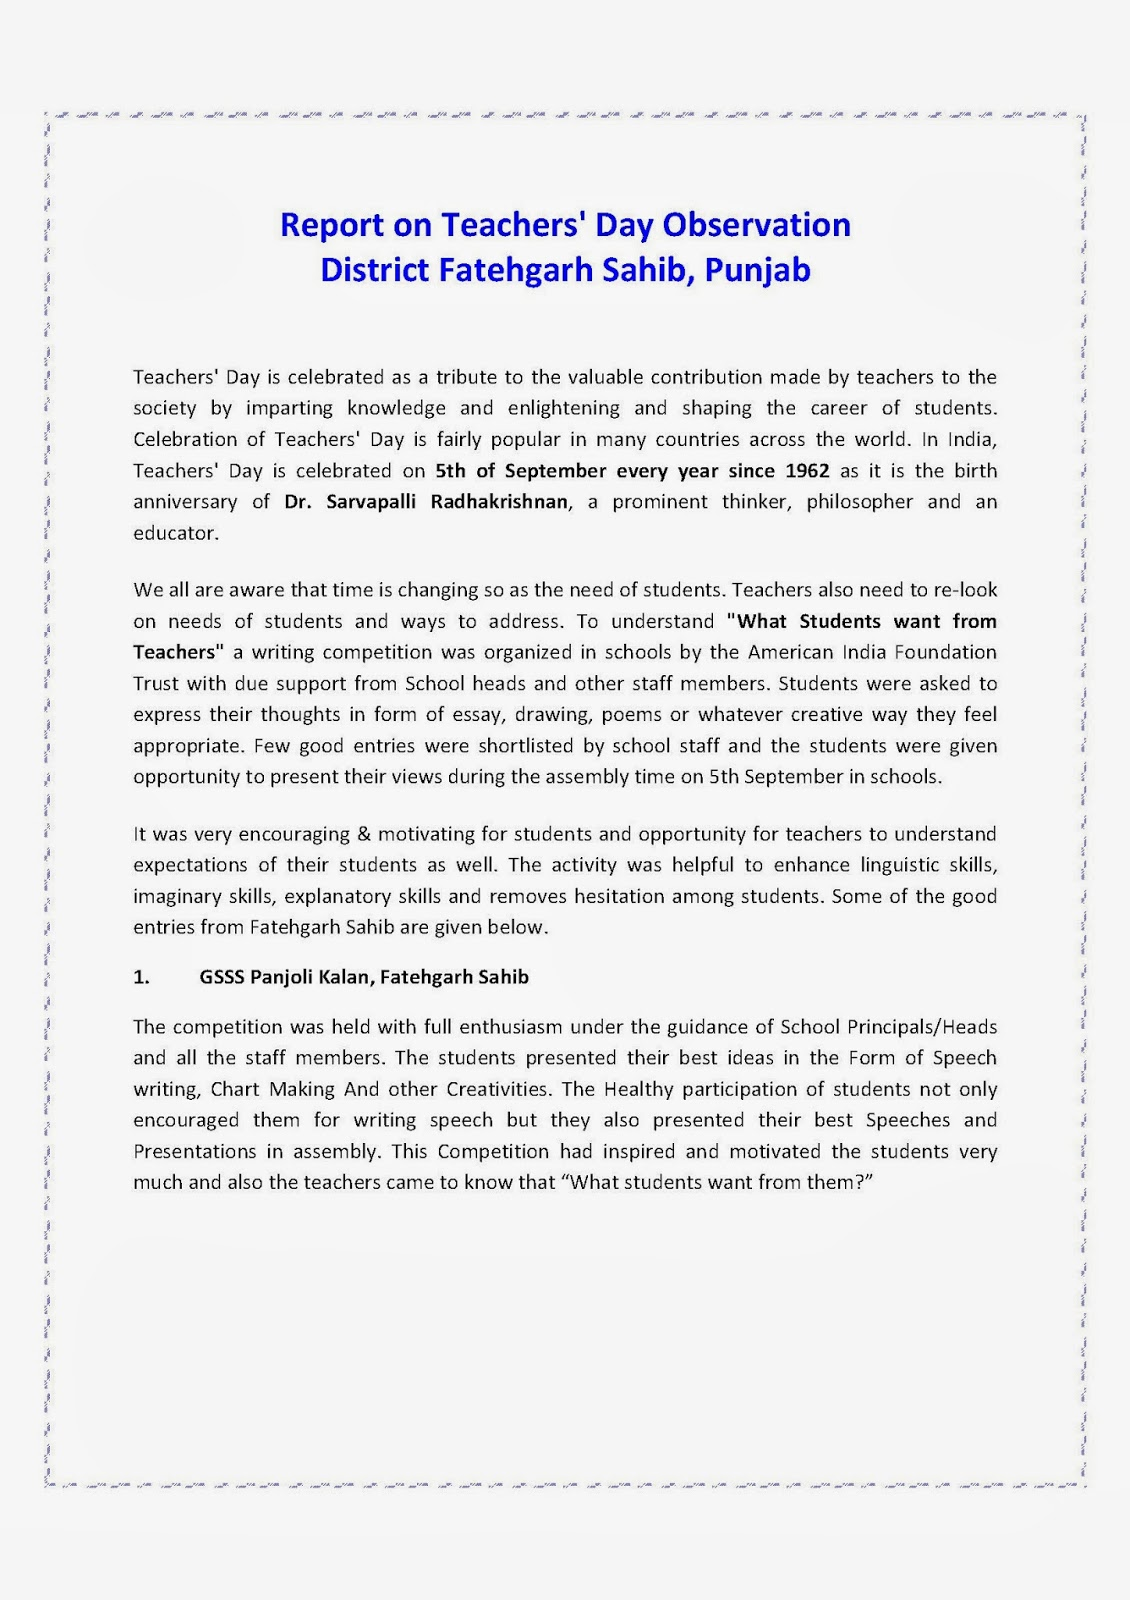 essay of world teachers day Find short and long essay on teacher's day for students under words limit of 100, 200, 300 teachers day is celebrated to appreciate our teachers for their unconditional efforts and unselfish contribution in the success of nation teacher's day essay 3 (300 words) in world.